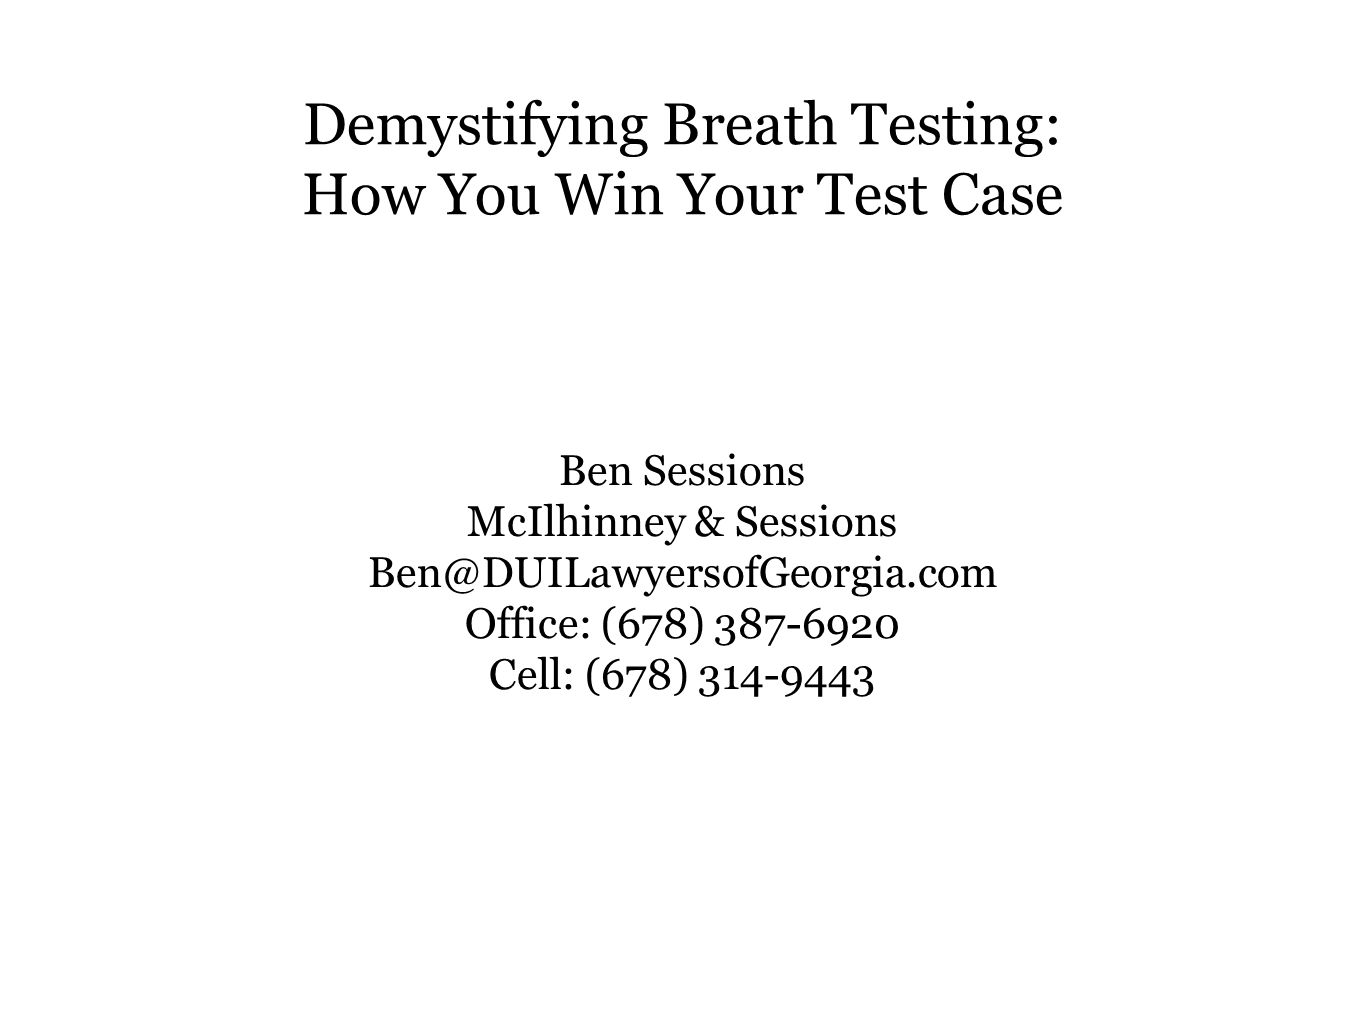 Demystifying Breath Testing: How You Win Your Test Case